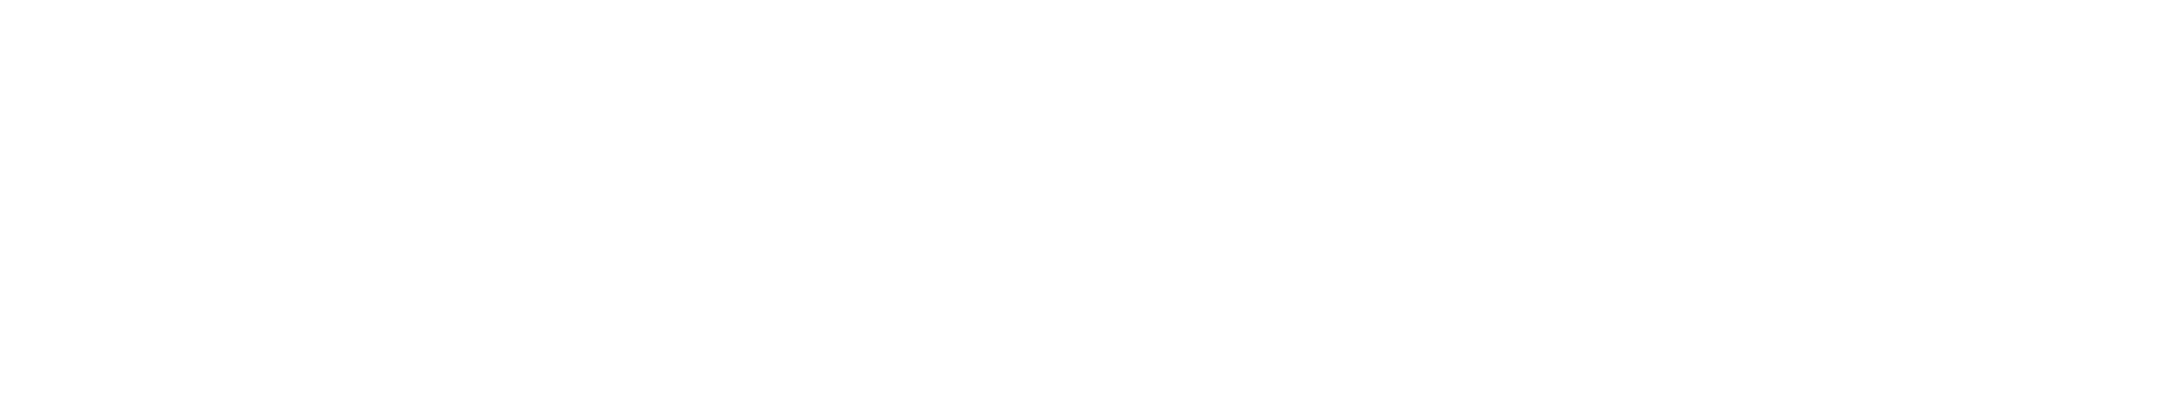 Keeping You Connected to What Matters Most